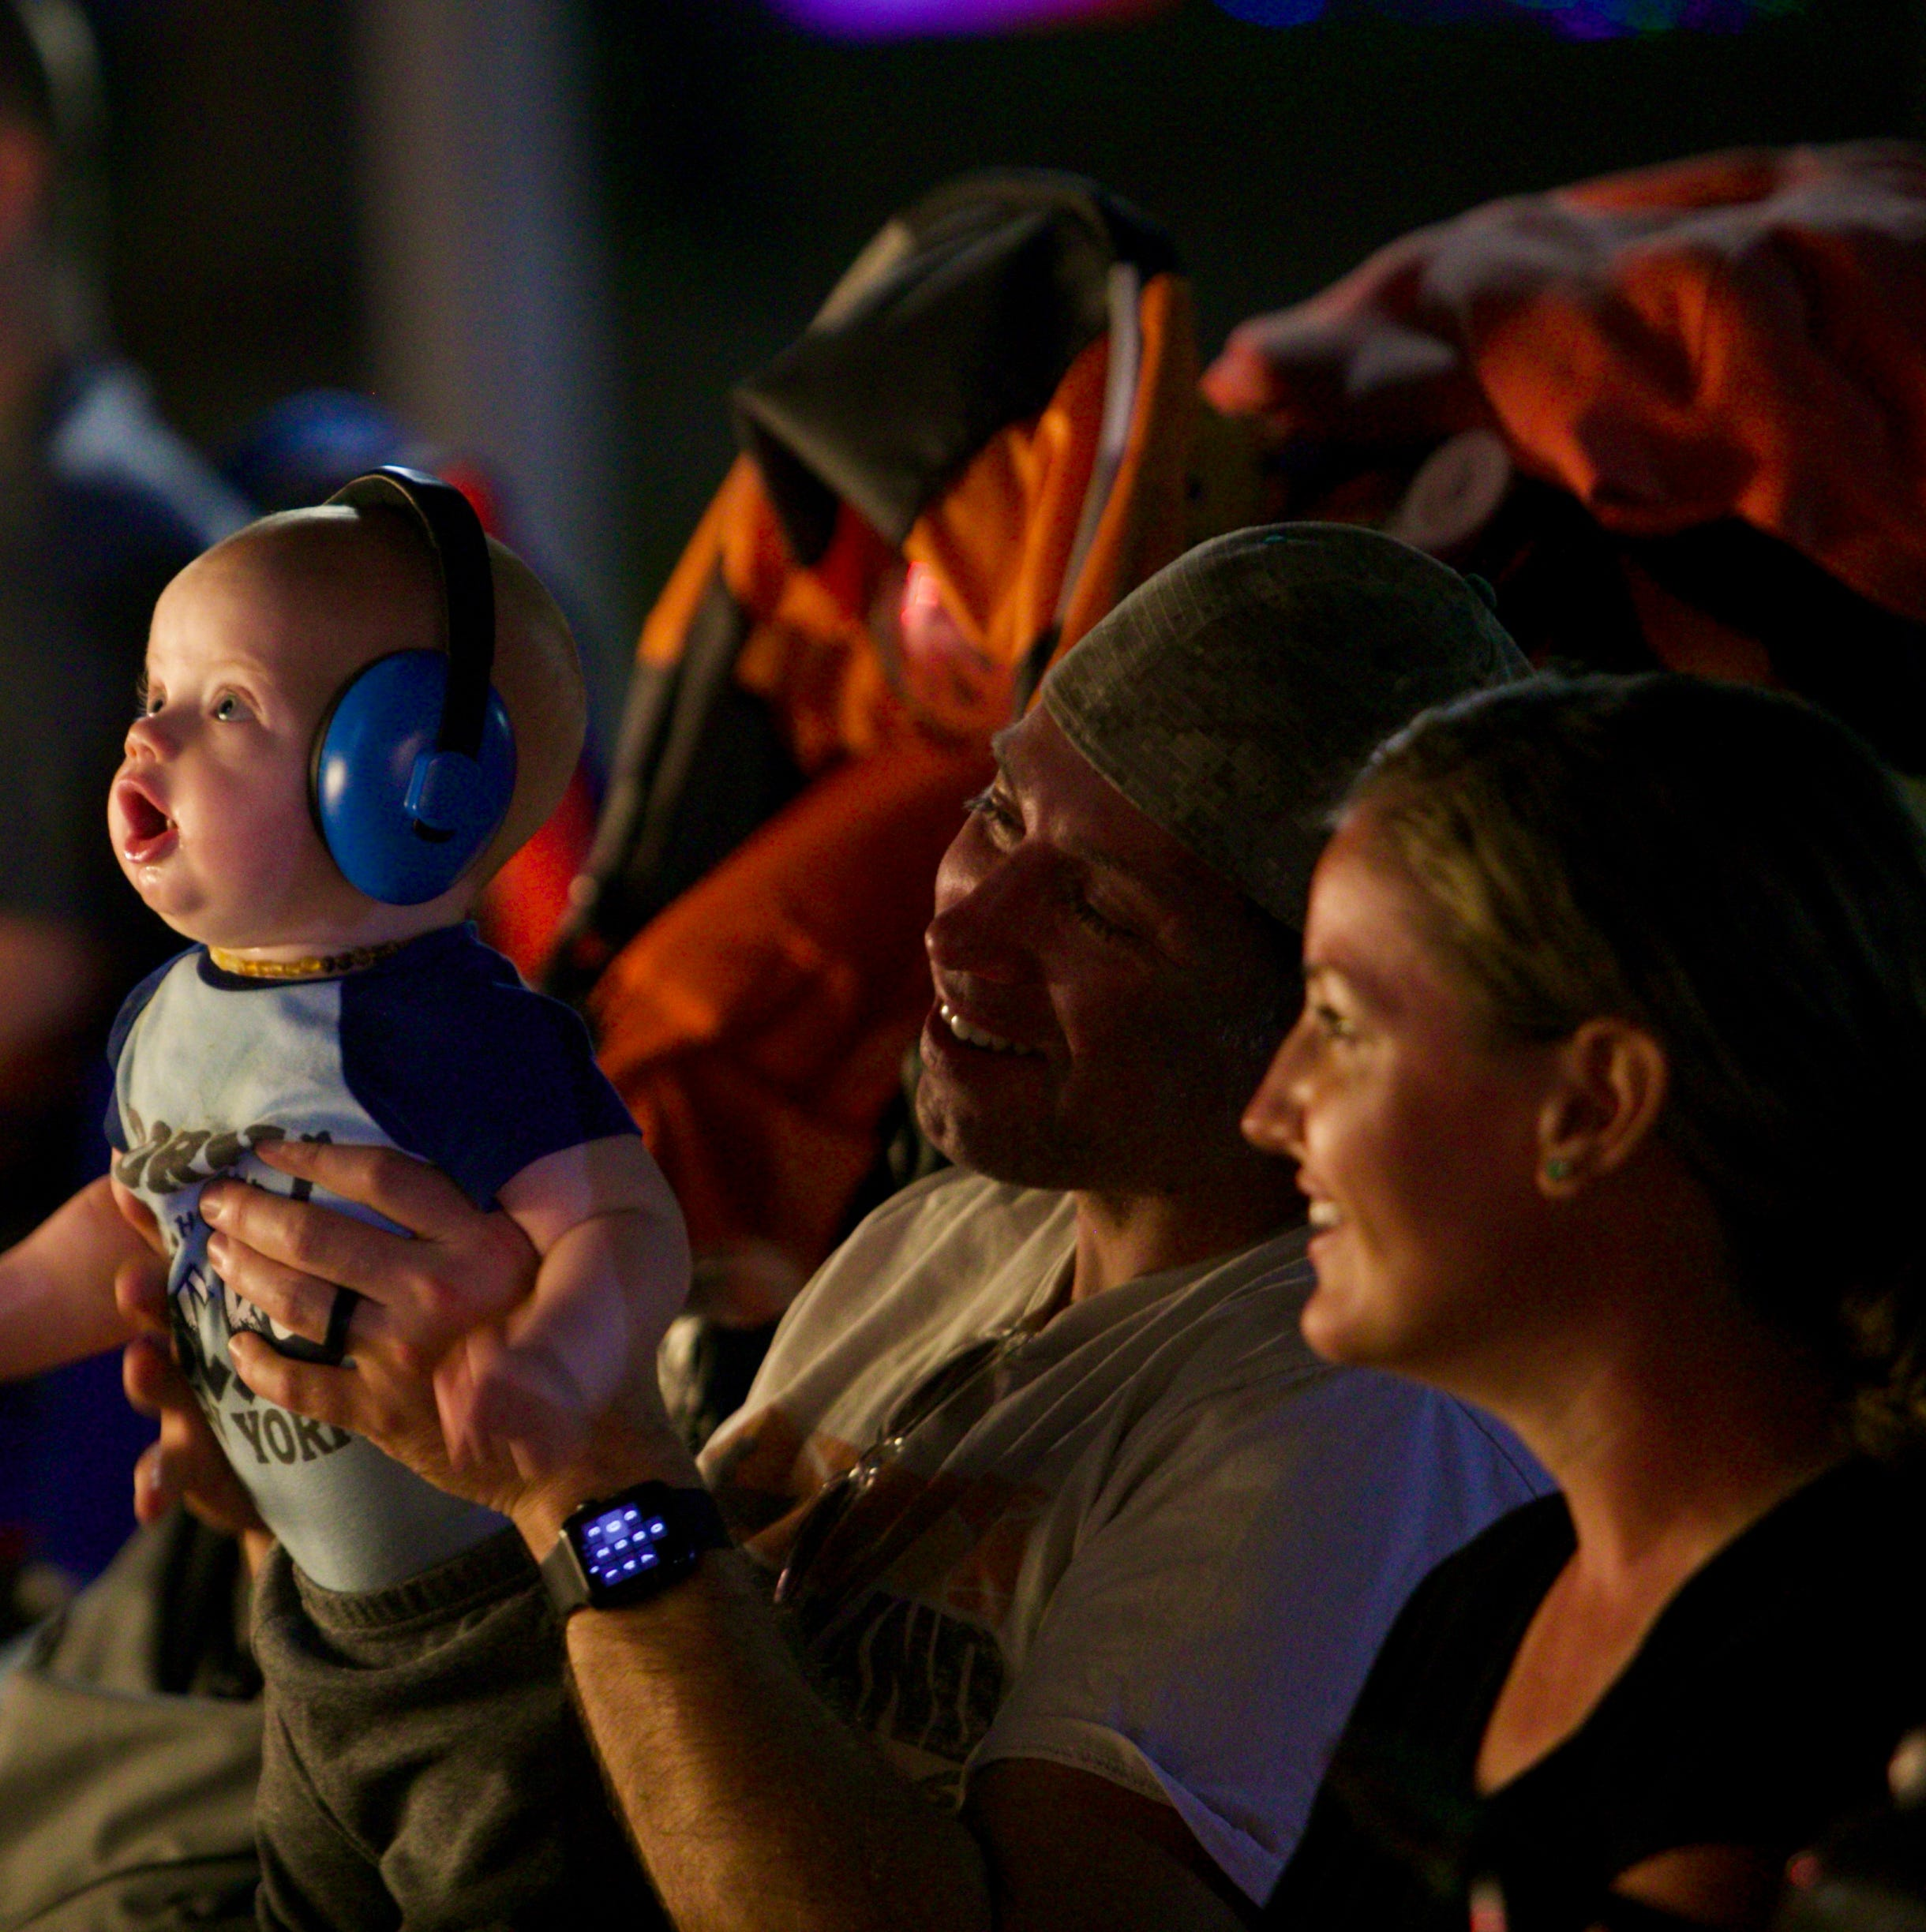 Edison Festival of Light Grand Parade draws families, friends for food, entertainment, and bonding